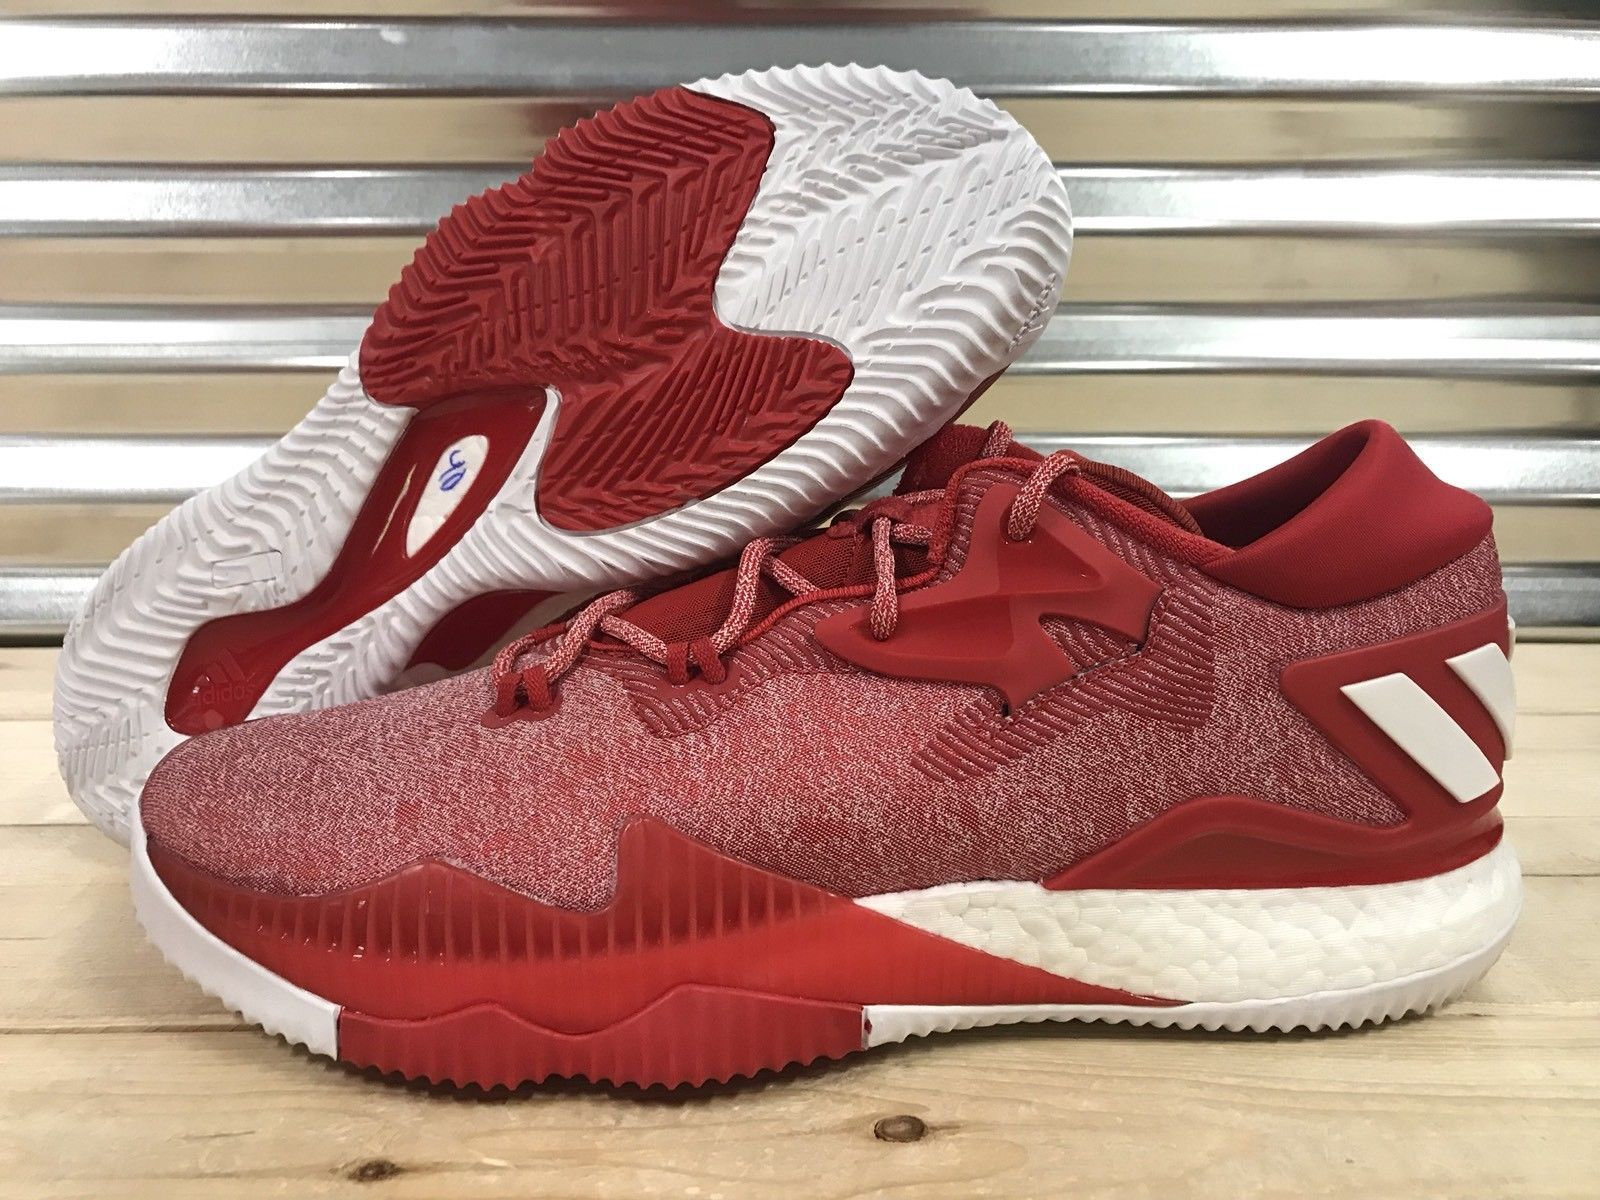 Adidas SM CL Crazylight Boost Basketball Shoes Red White Candy Cane ( B42961 )